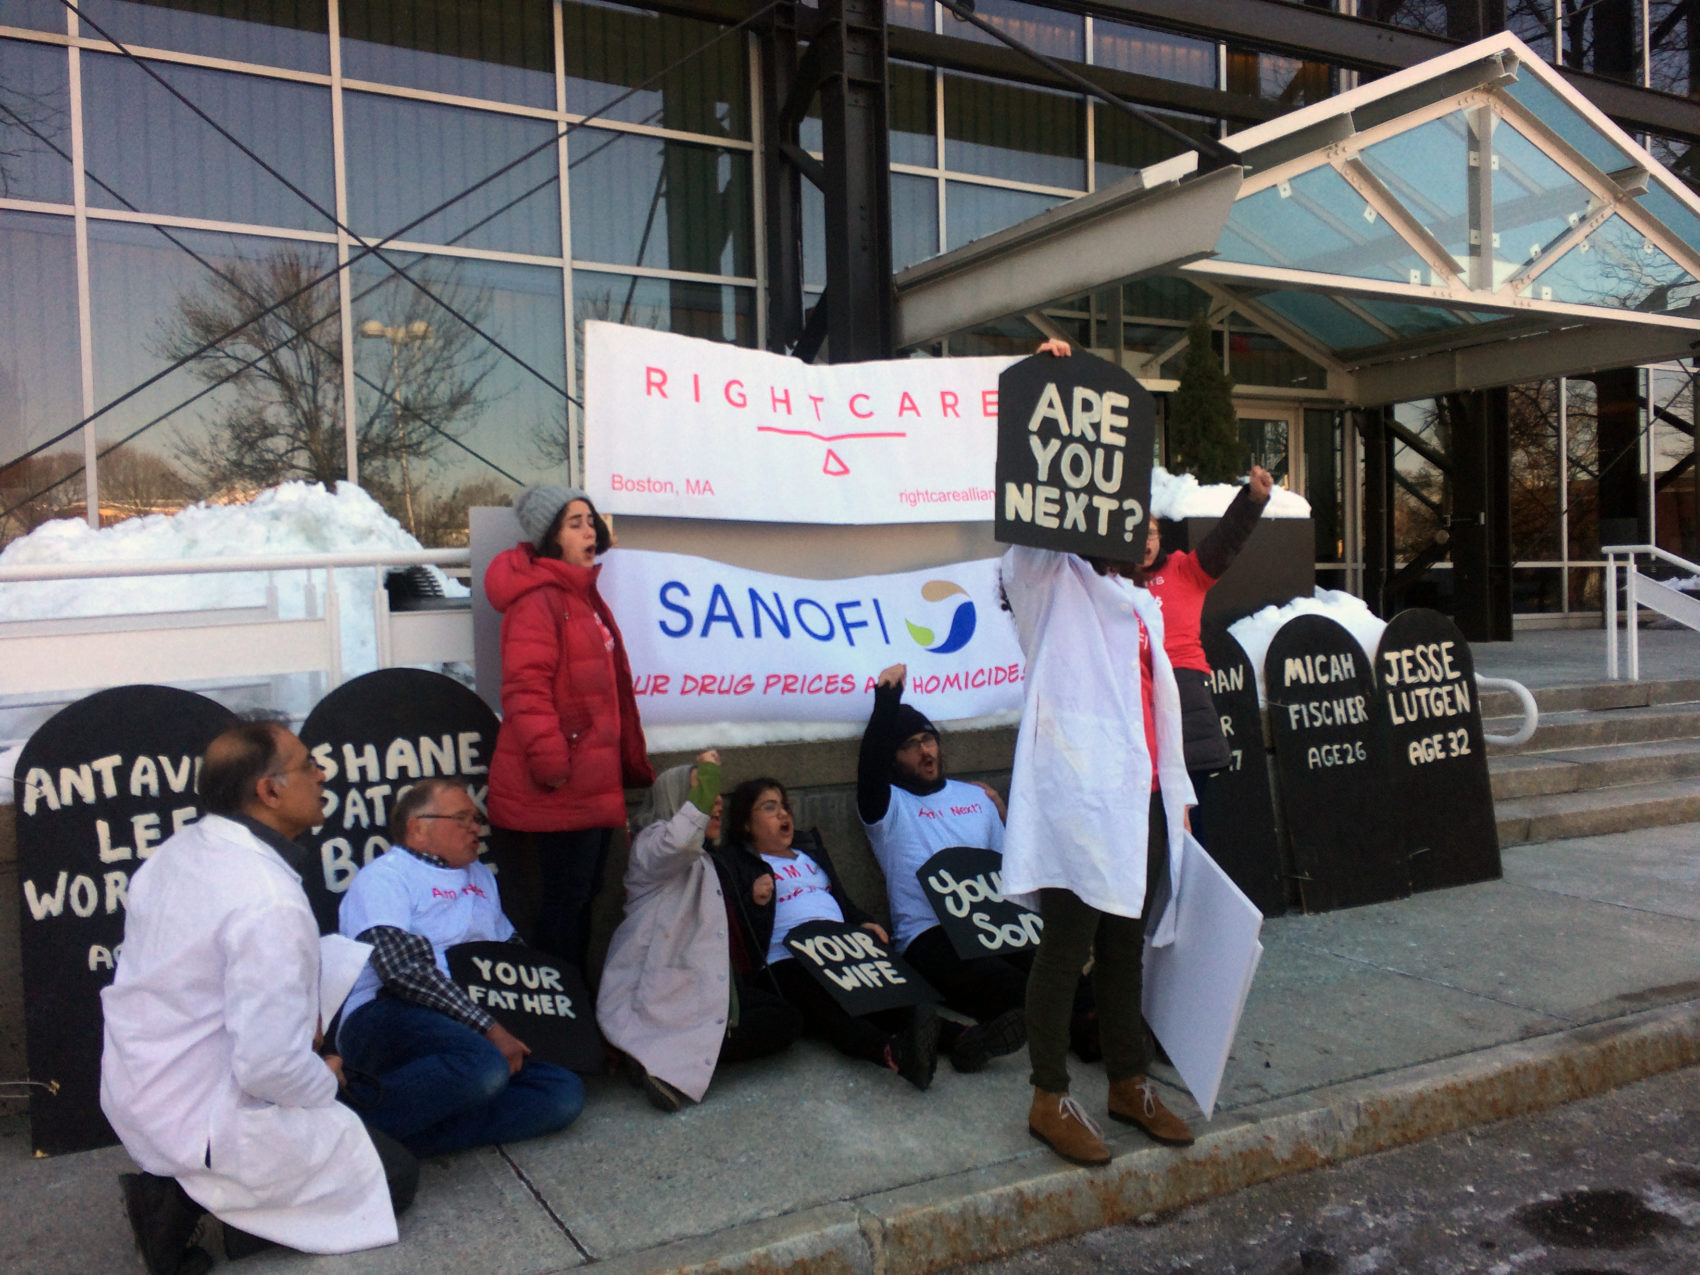 The Right Care Alliance held a protest against high insulin prices, which have led some to the dangerous practice of cutting doses to save, at Sanofi offices in Cambridge, Mass., Tuesday. (Anna Bauman/On Point)